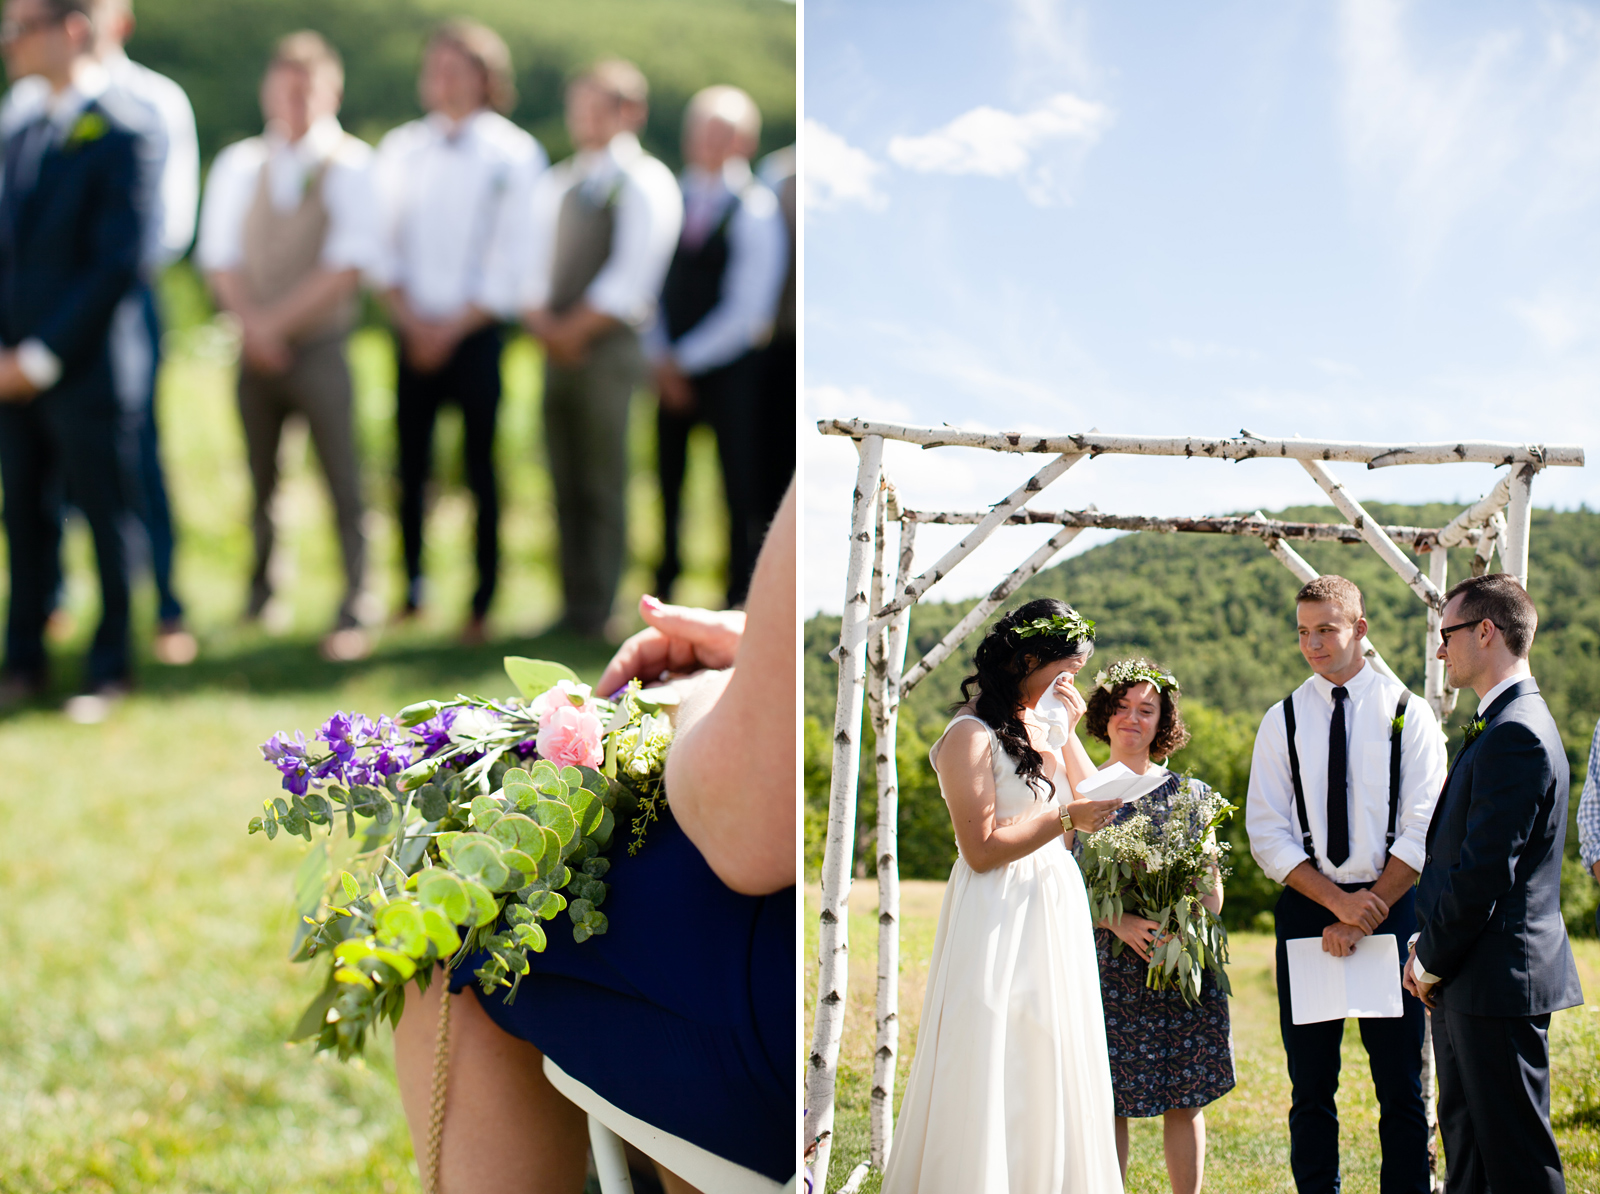 wedding ceremony at the montague retreat center in western mass